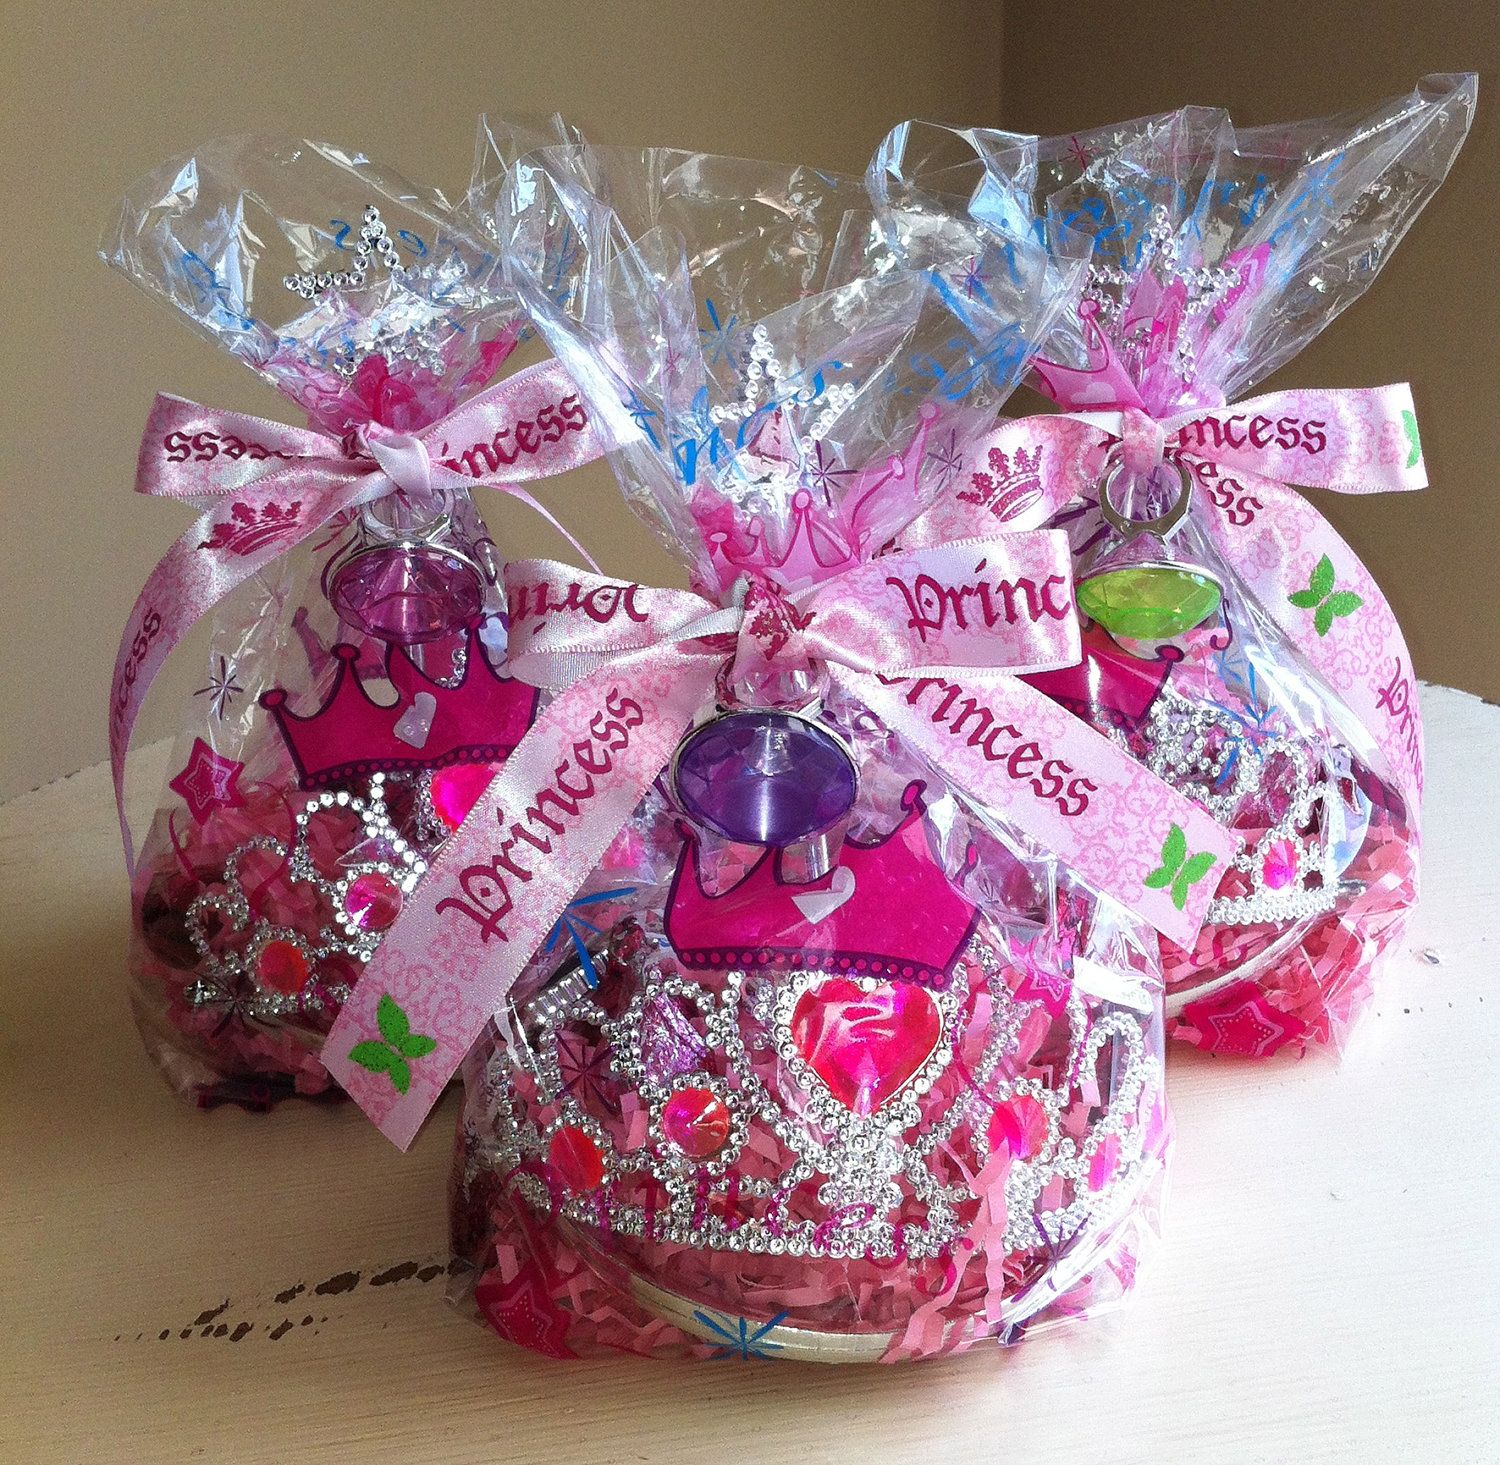 Party Favor Ideas: Princess Favors By RizOHcollection On Etsy-I Made My Own